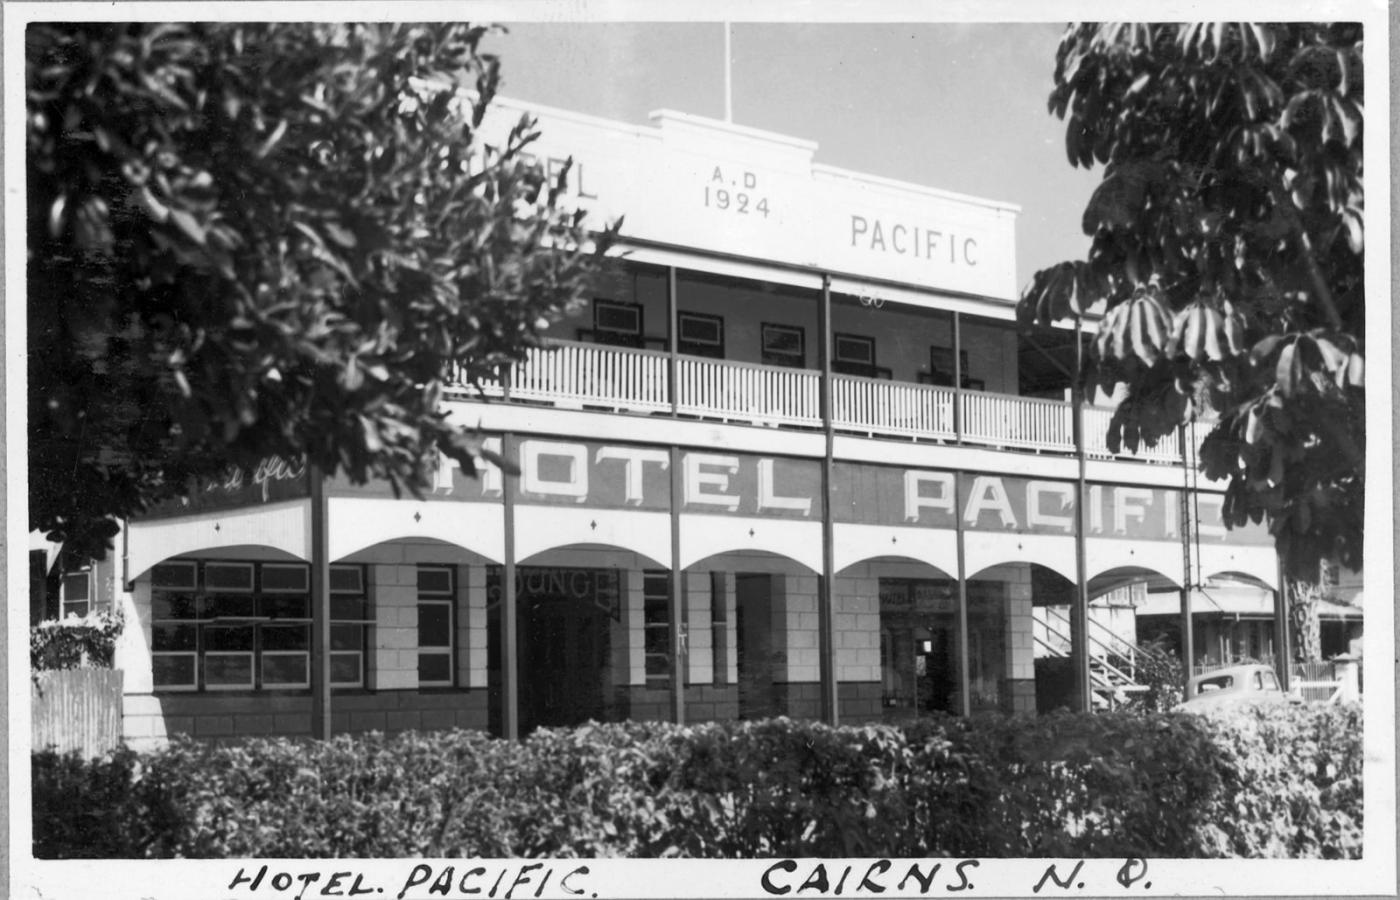 Exterior view of a grand pub in Cairns from the 1940s